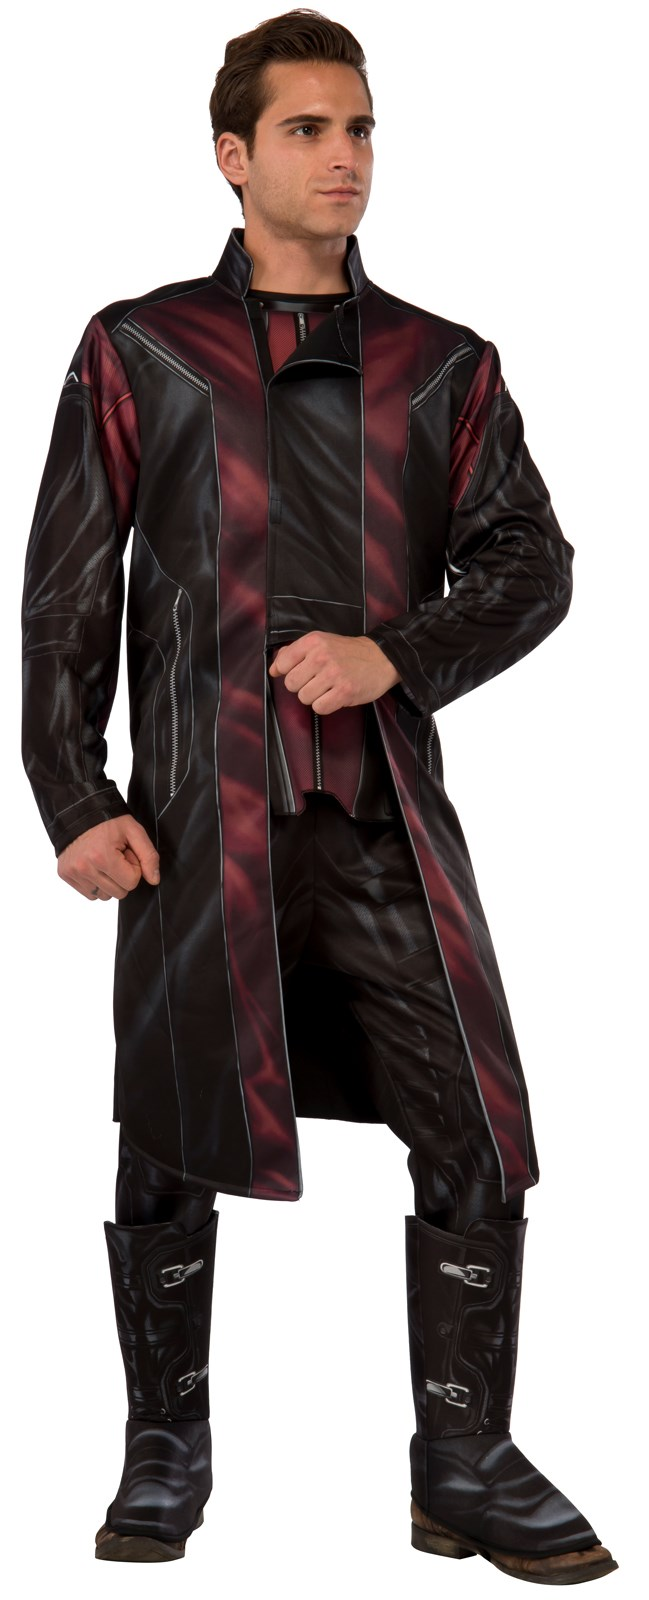 Avengers 2 - Age of Ultron: Deluxe Hawkeye Costume For Men X-Large (42-46)